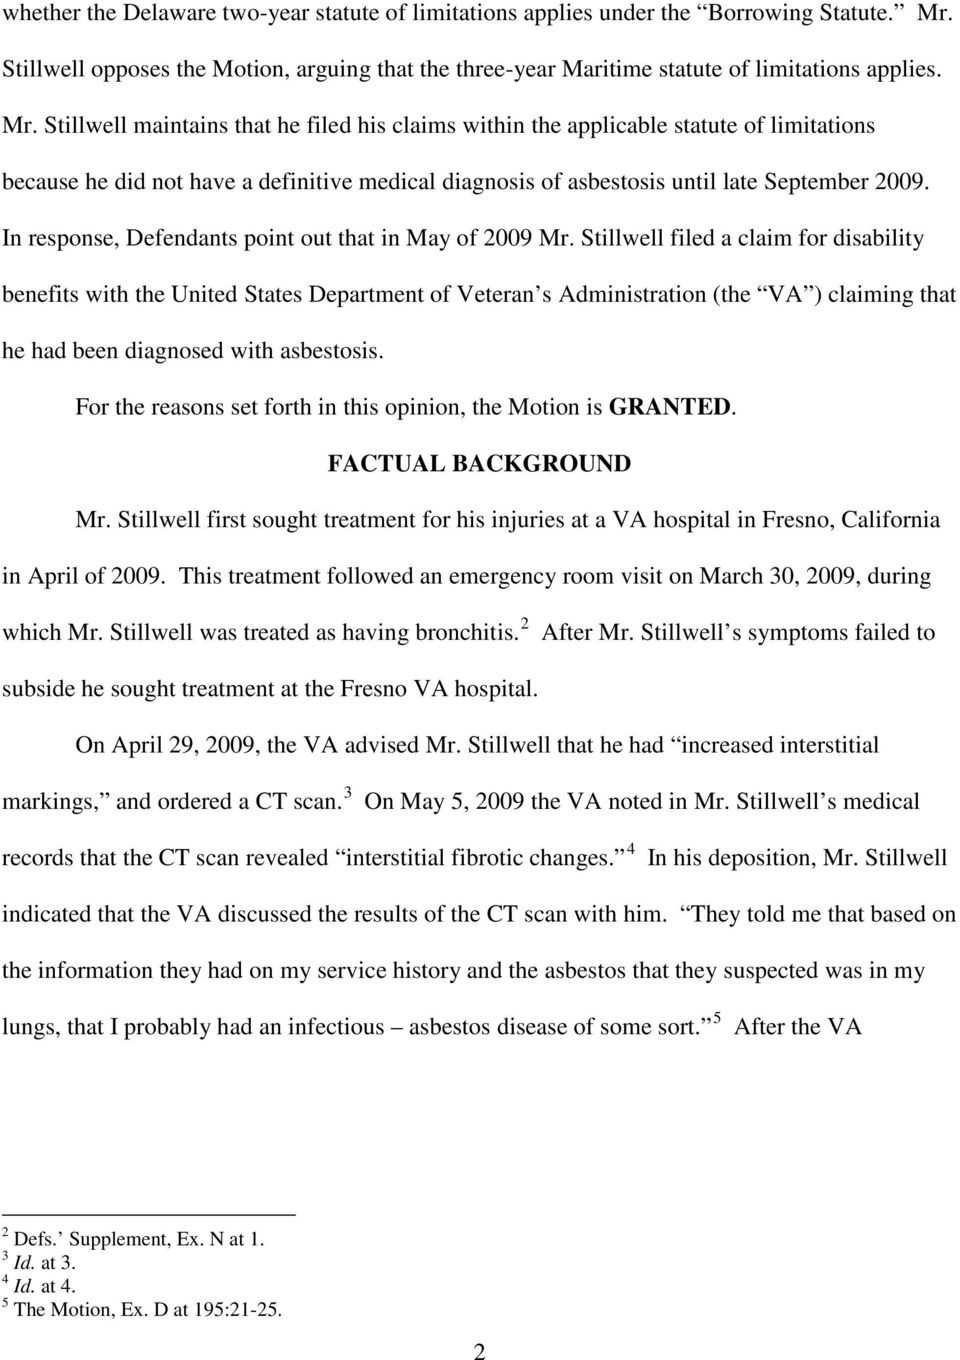 Stillwell maintains that he filed his claims within the applicable statute of limitations because he did not have a definitive medical diagnosis of asbestosis until late September 2009.